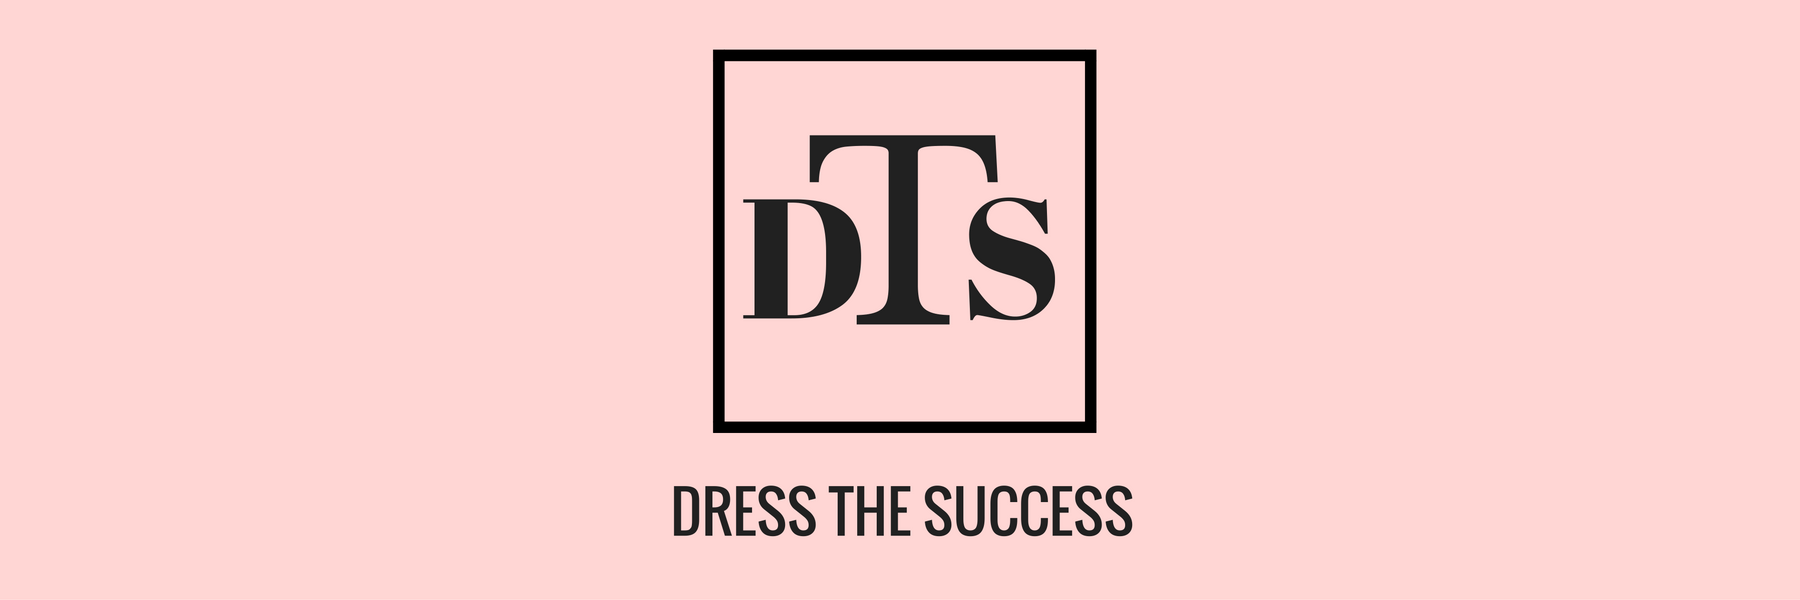 Dress The Success